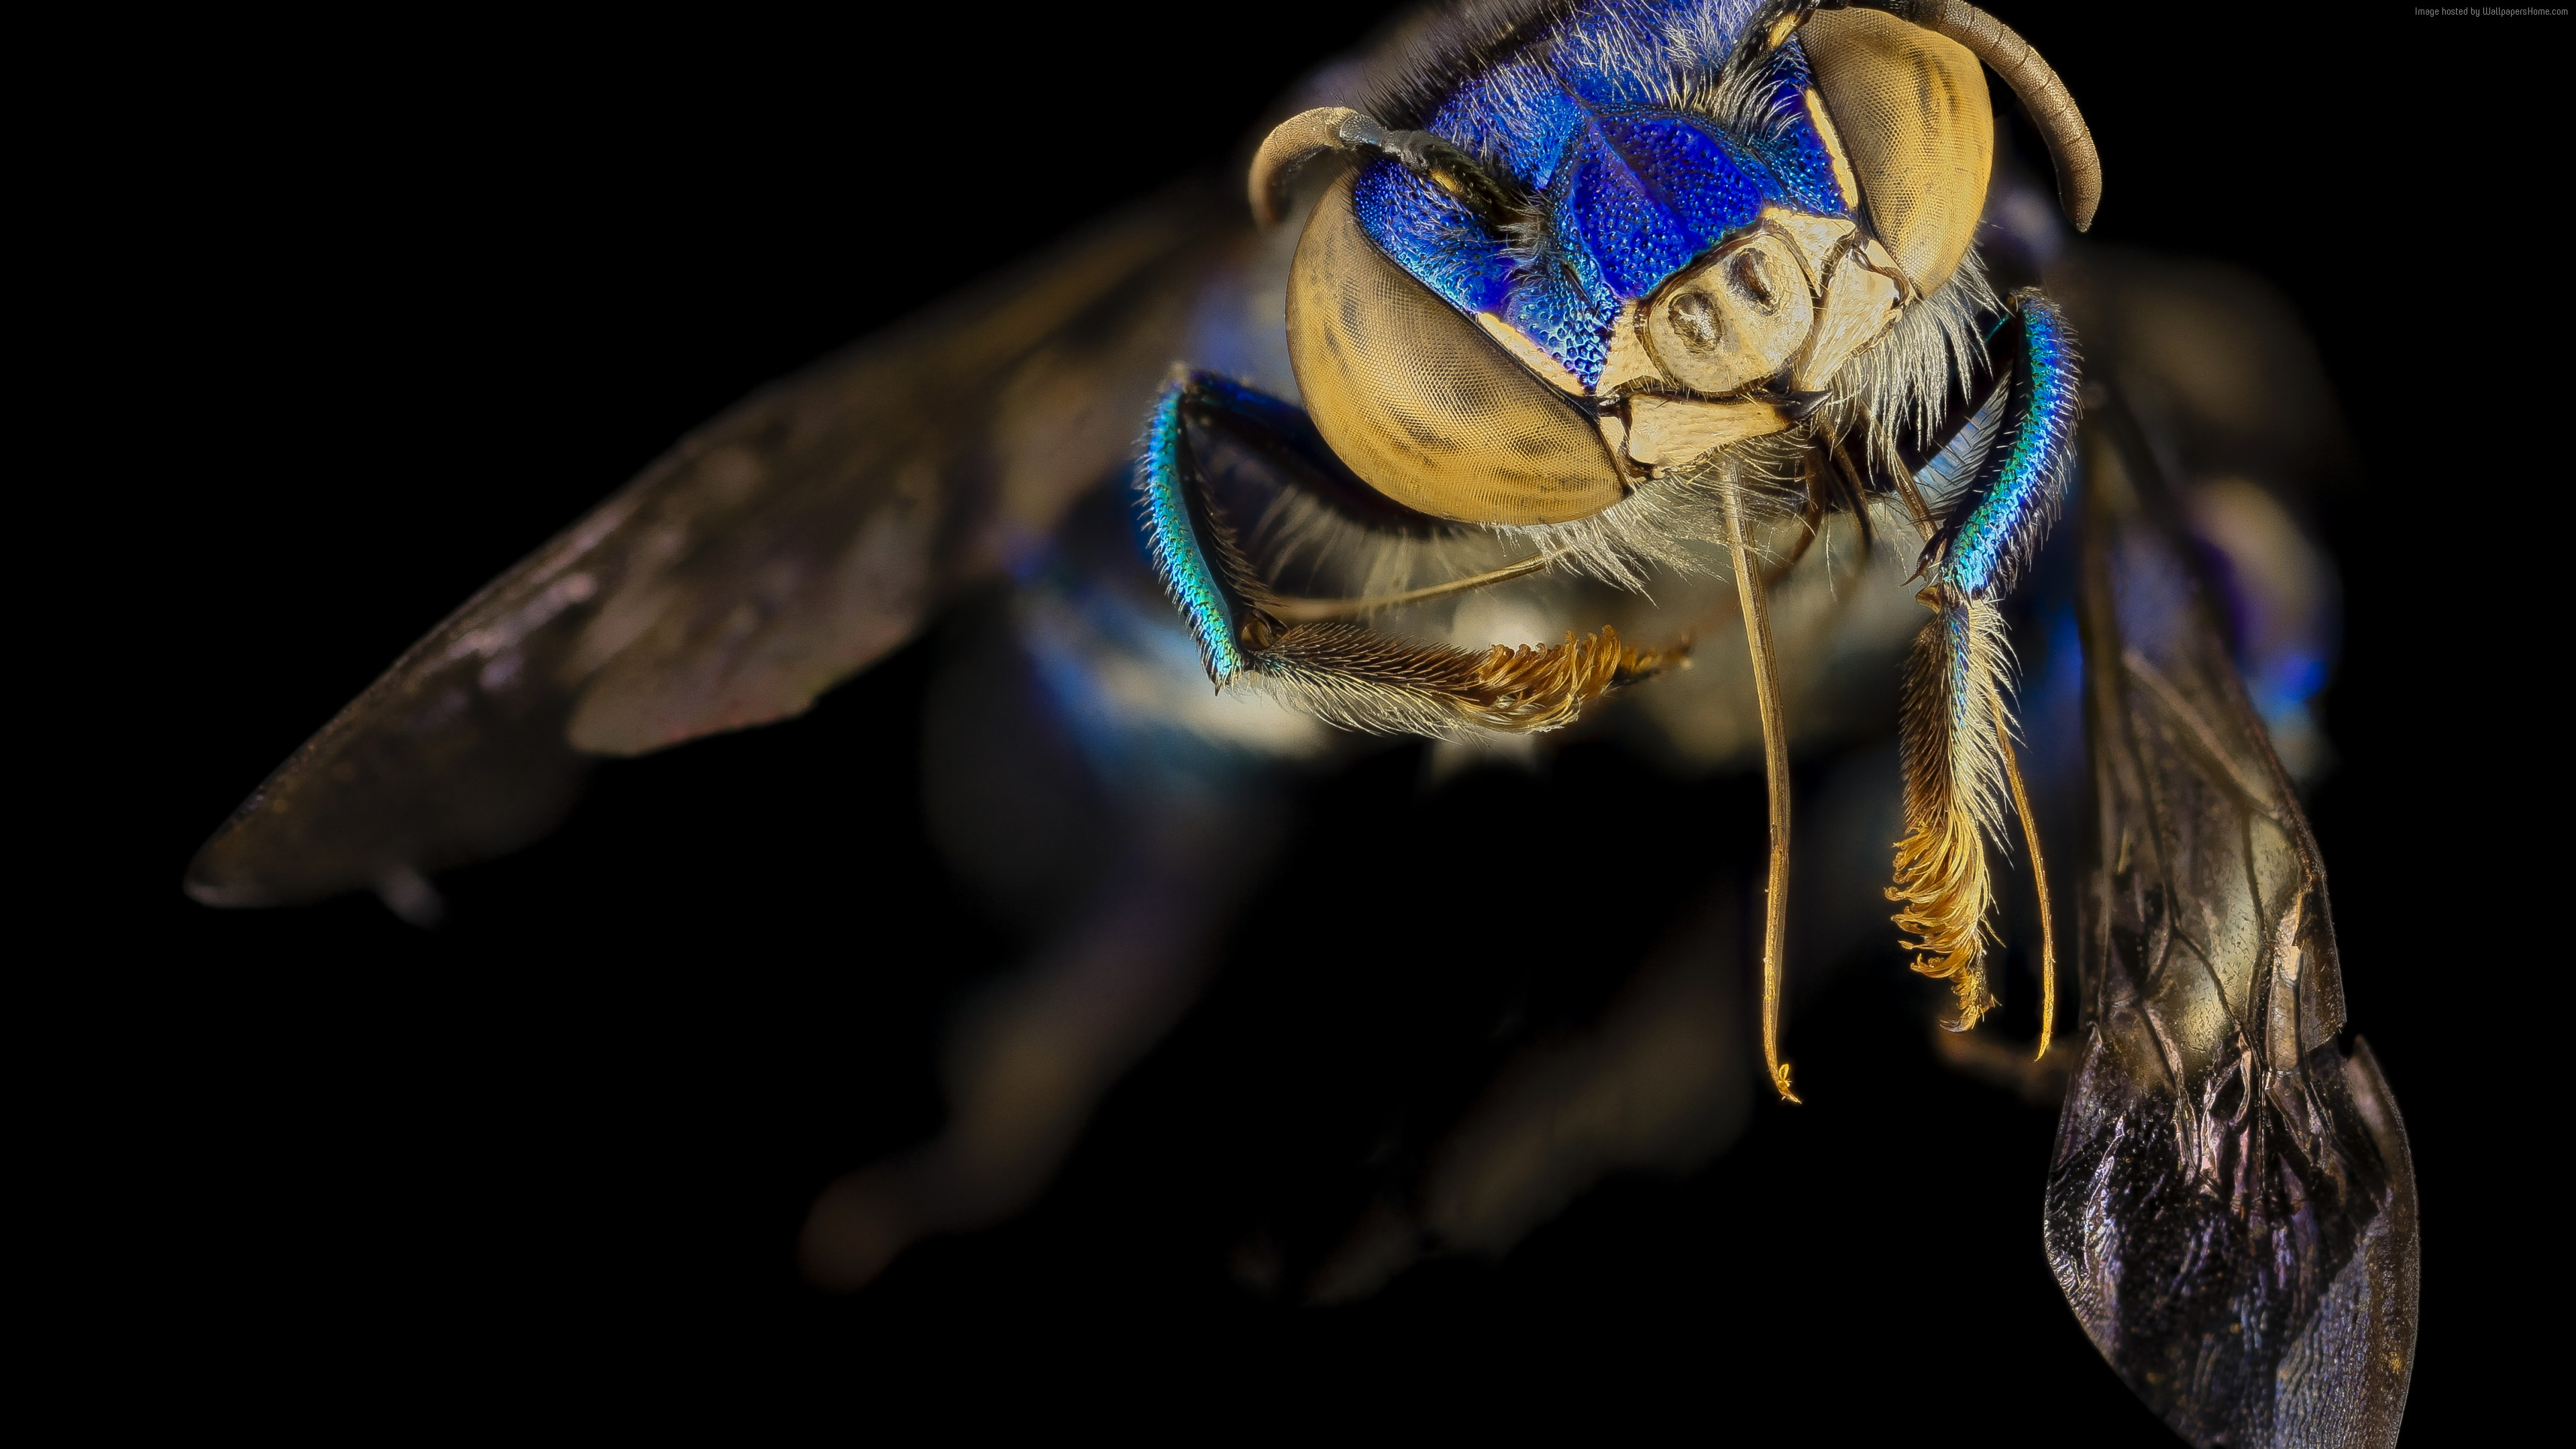 Wallpaper Euglossa Orchid Bee, Mexico, Argentina, macro, blue, green, insects, black background, Animals